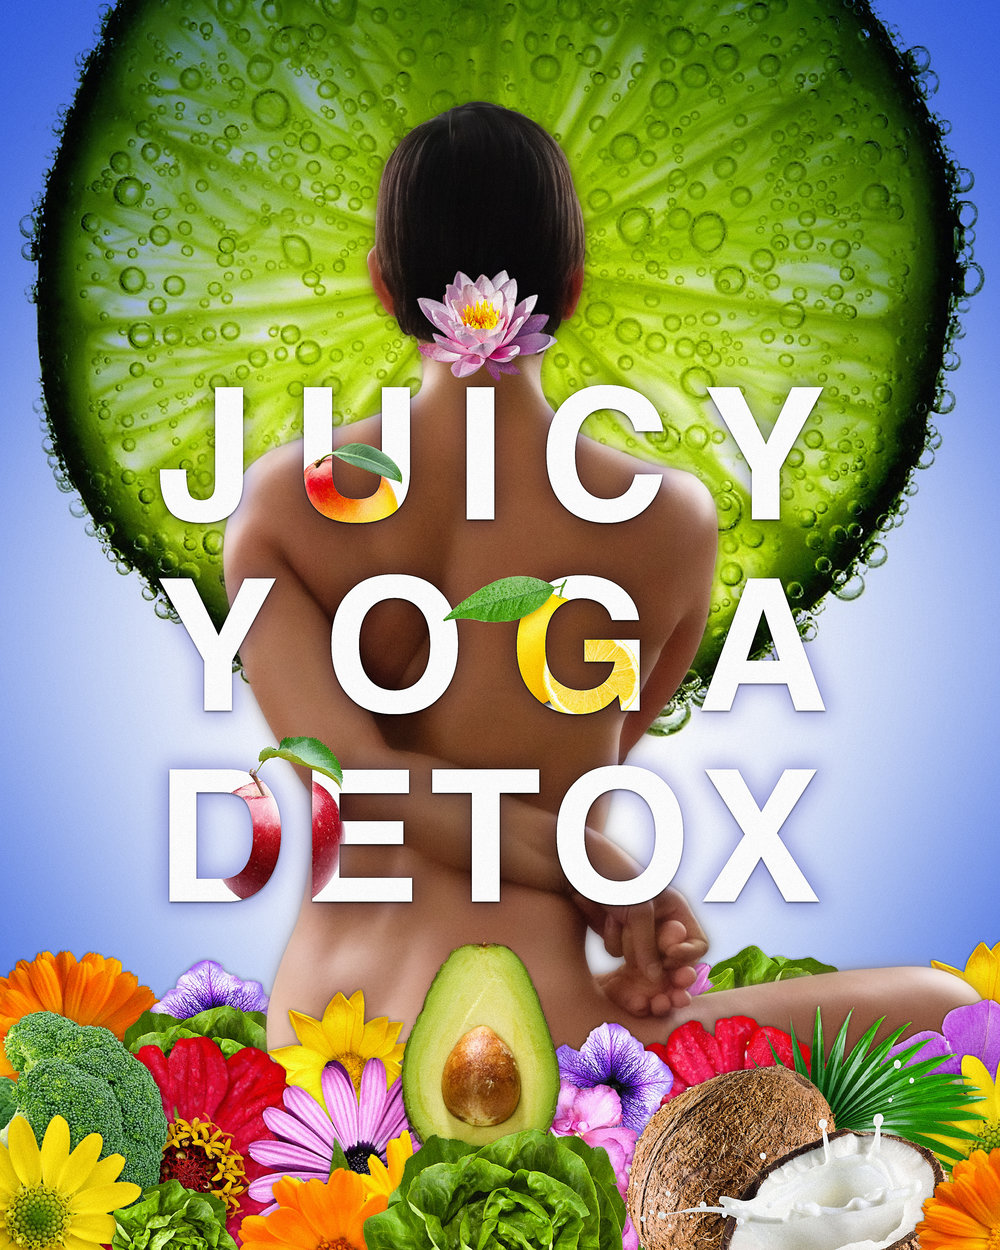 Green JUice & Yoga Detox Poster - Photo & Design